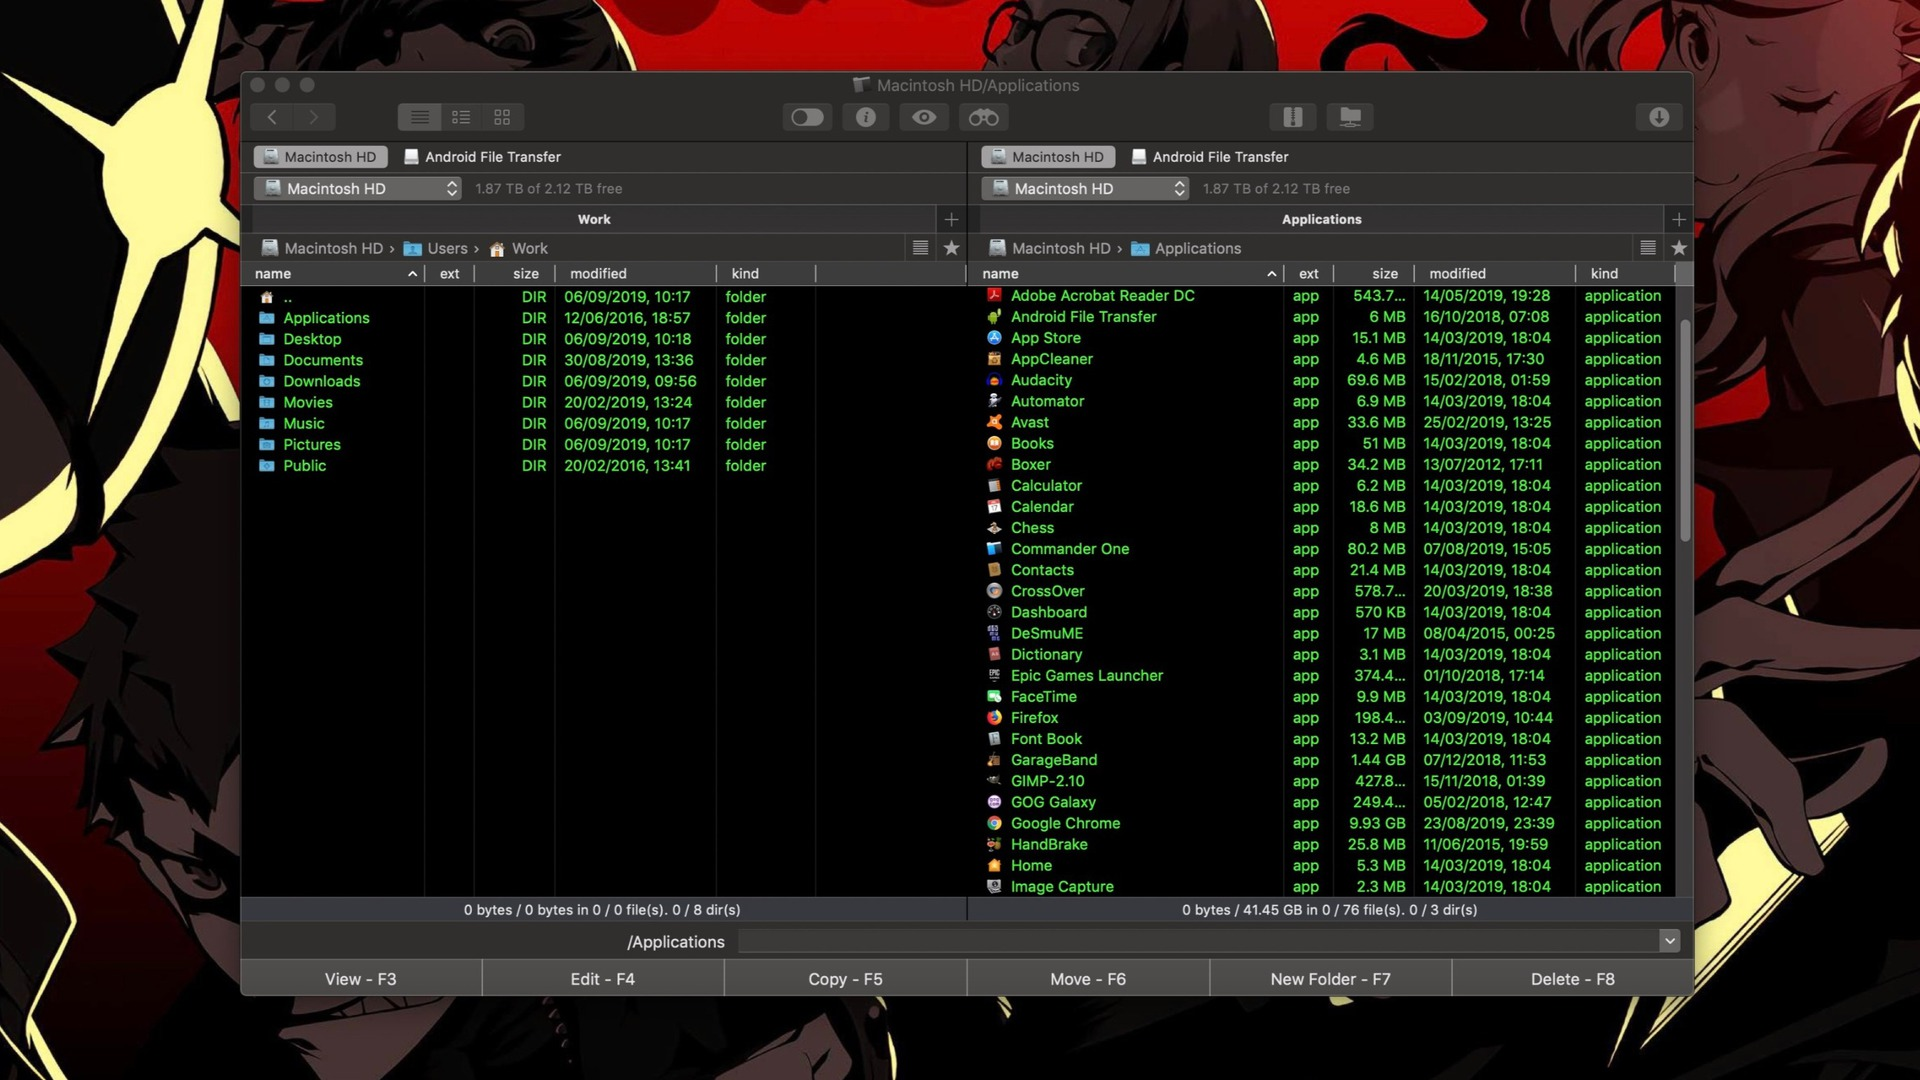 commander one dual pane - transfer files from Android to Mac